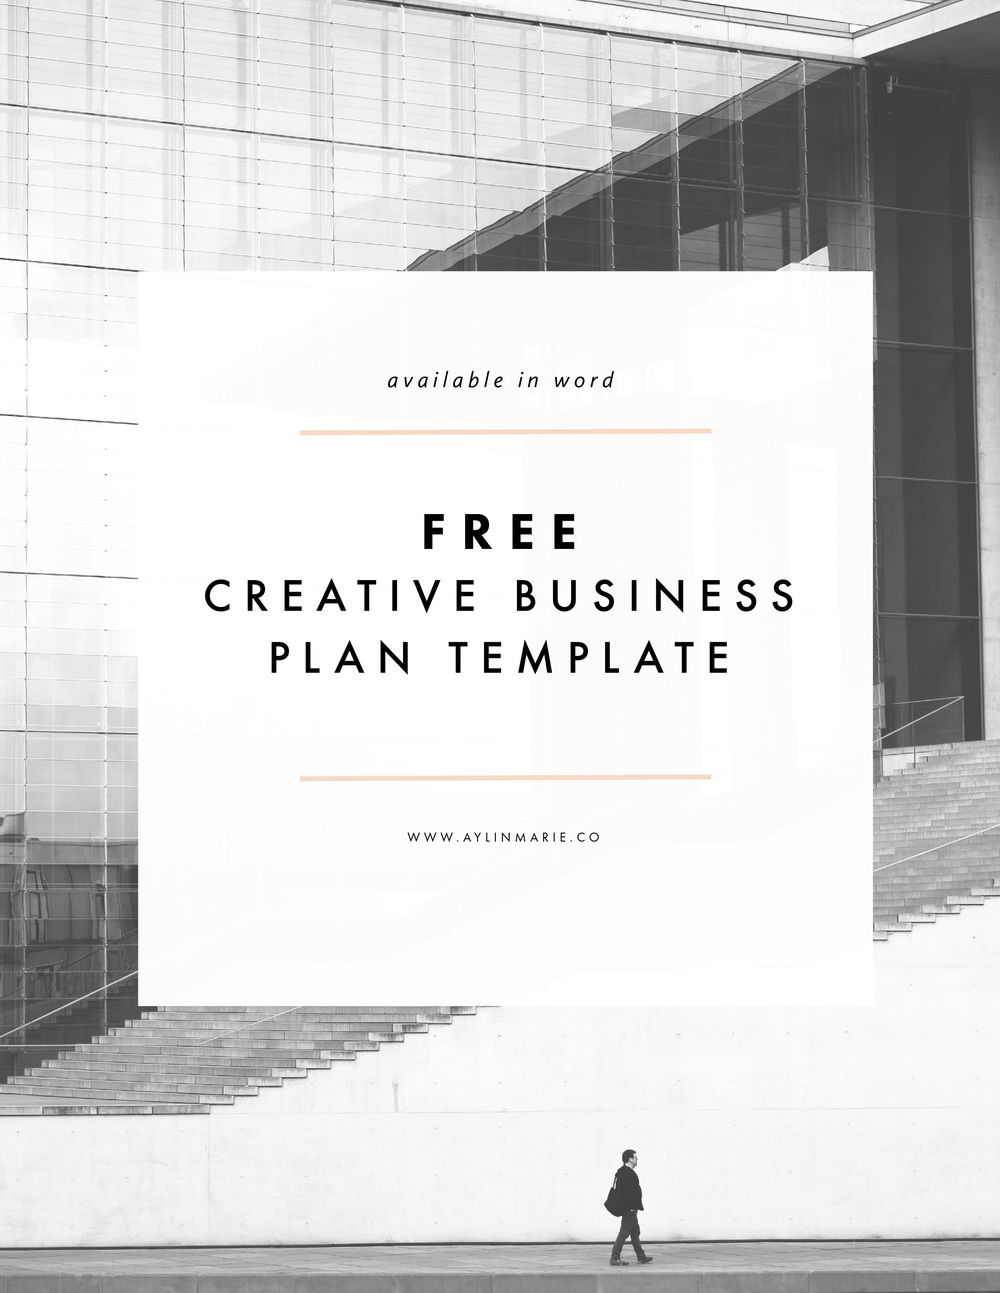 Freebie creative business plan template aylin marie freebie creative business plan template friedricerecipe Images